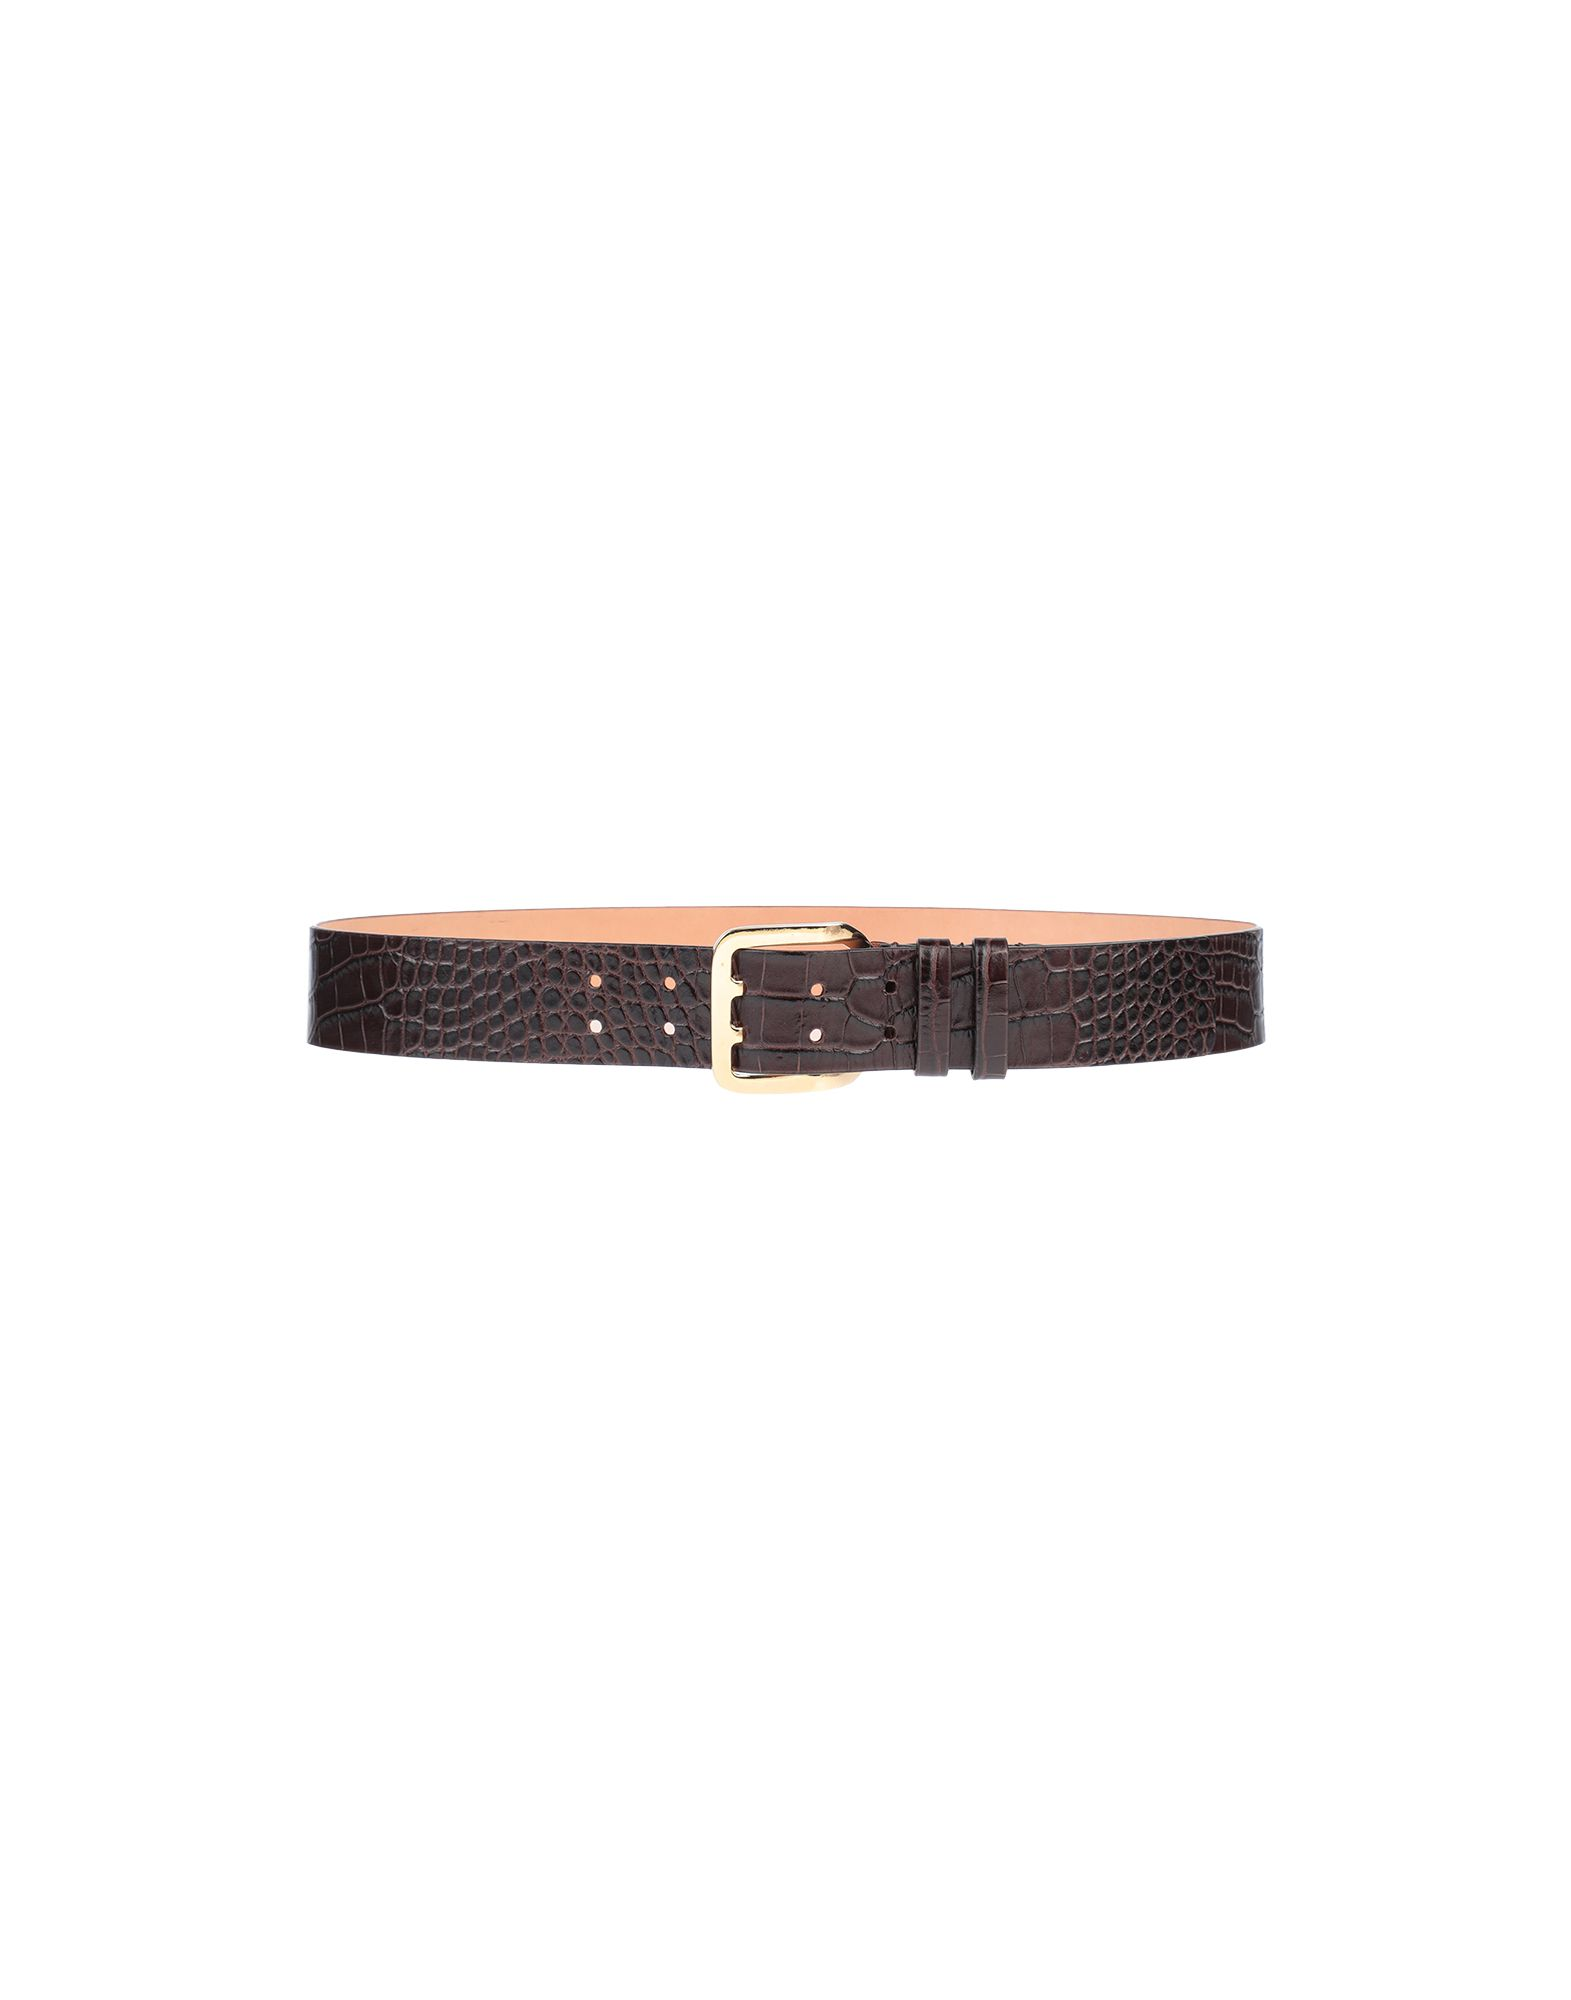 DSQUARED2 Belts. leather, crocodile print, no appliqués, solid color, standard, buckle fastening, contains non-textile parts of animal origin. Soft Leather